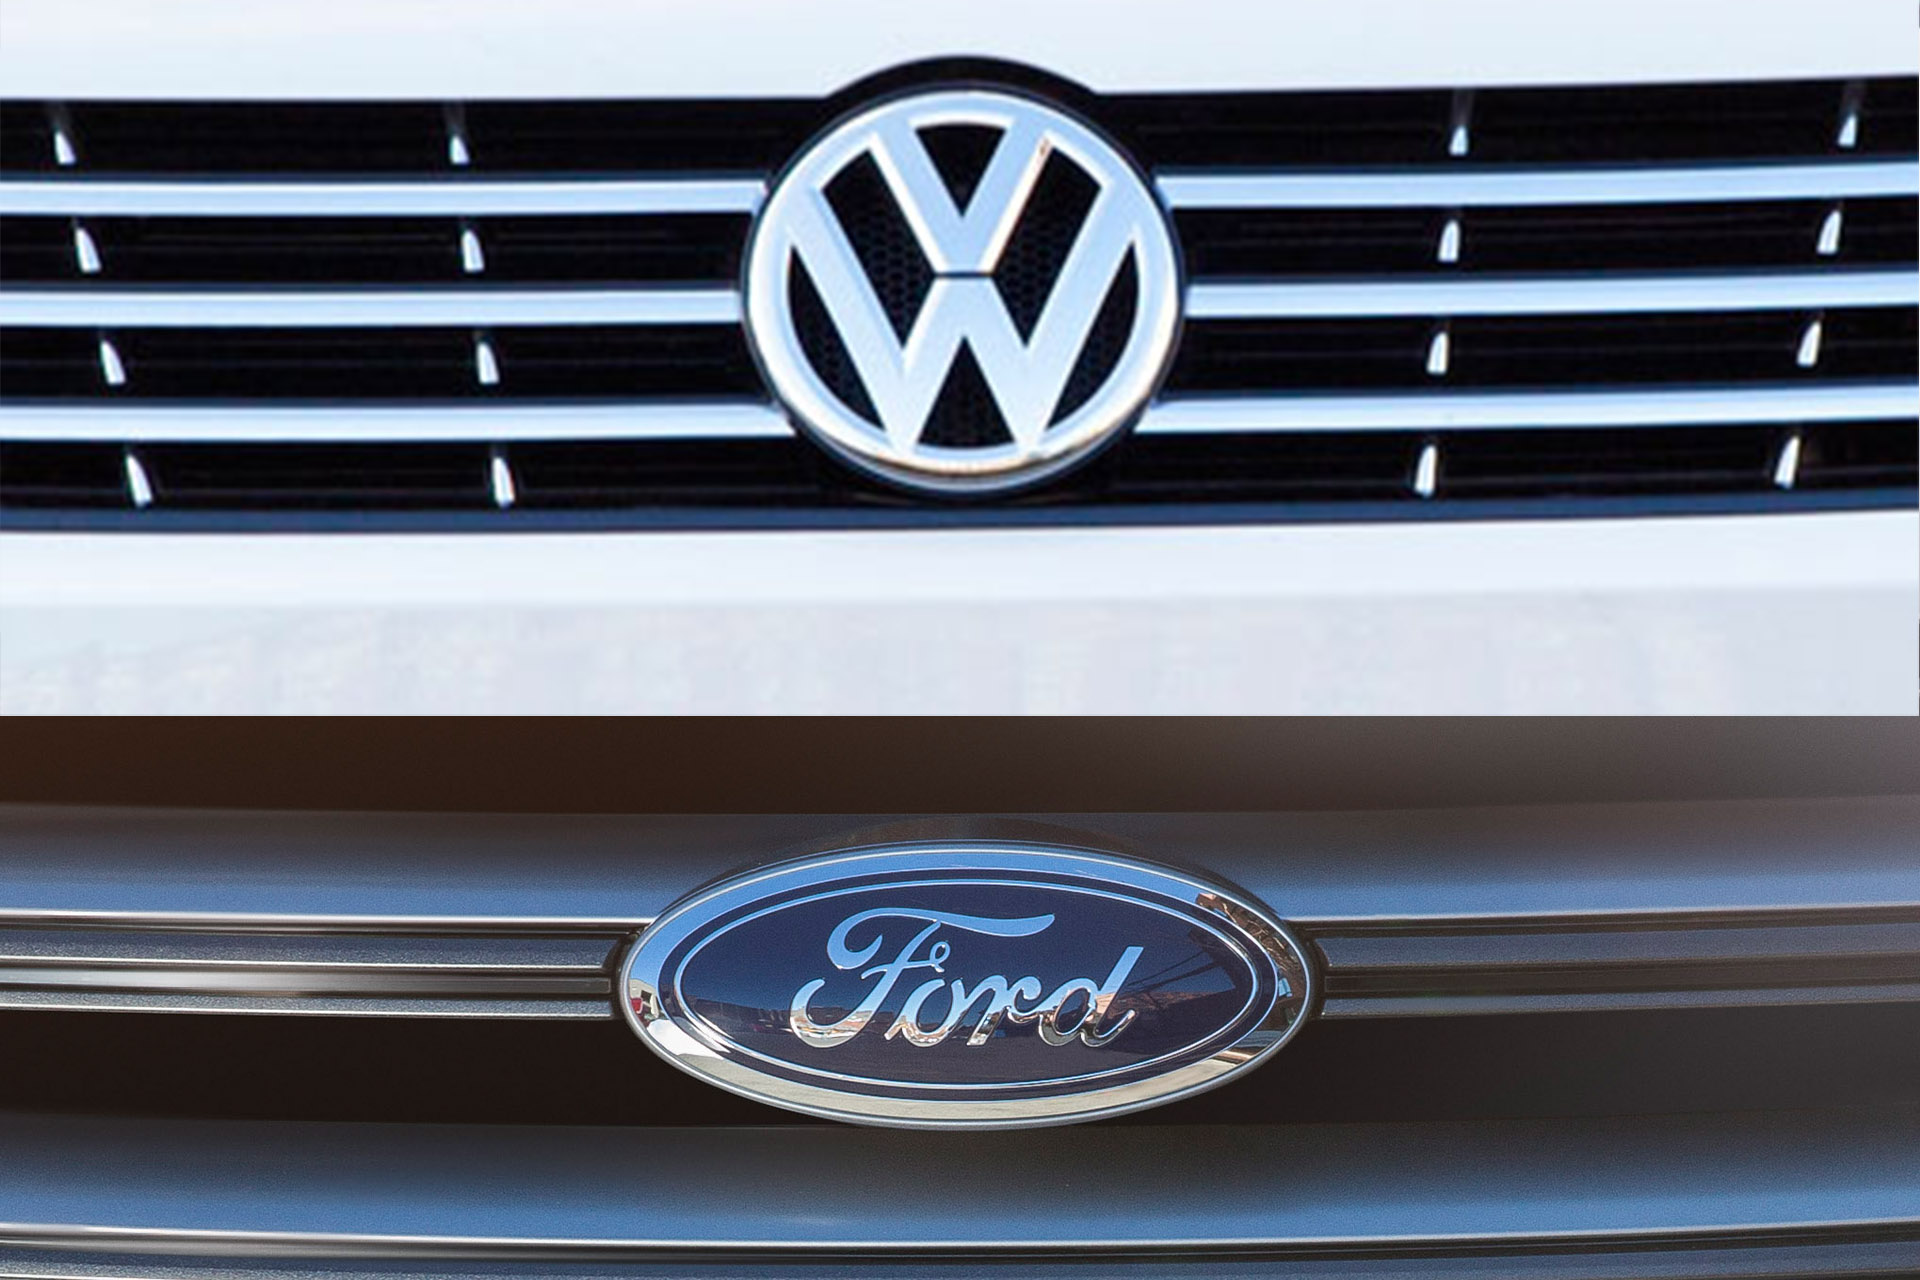 Whats next for ford vw partnership here are some possibilities